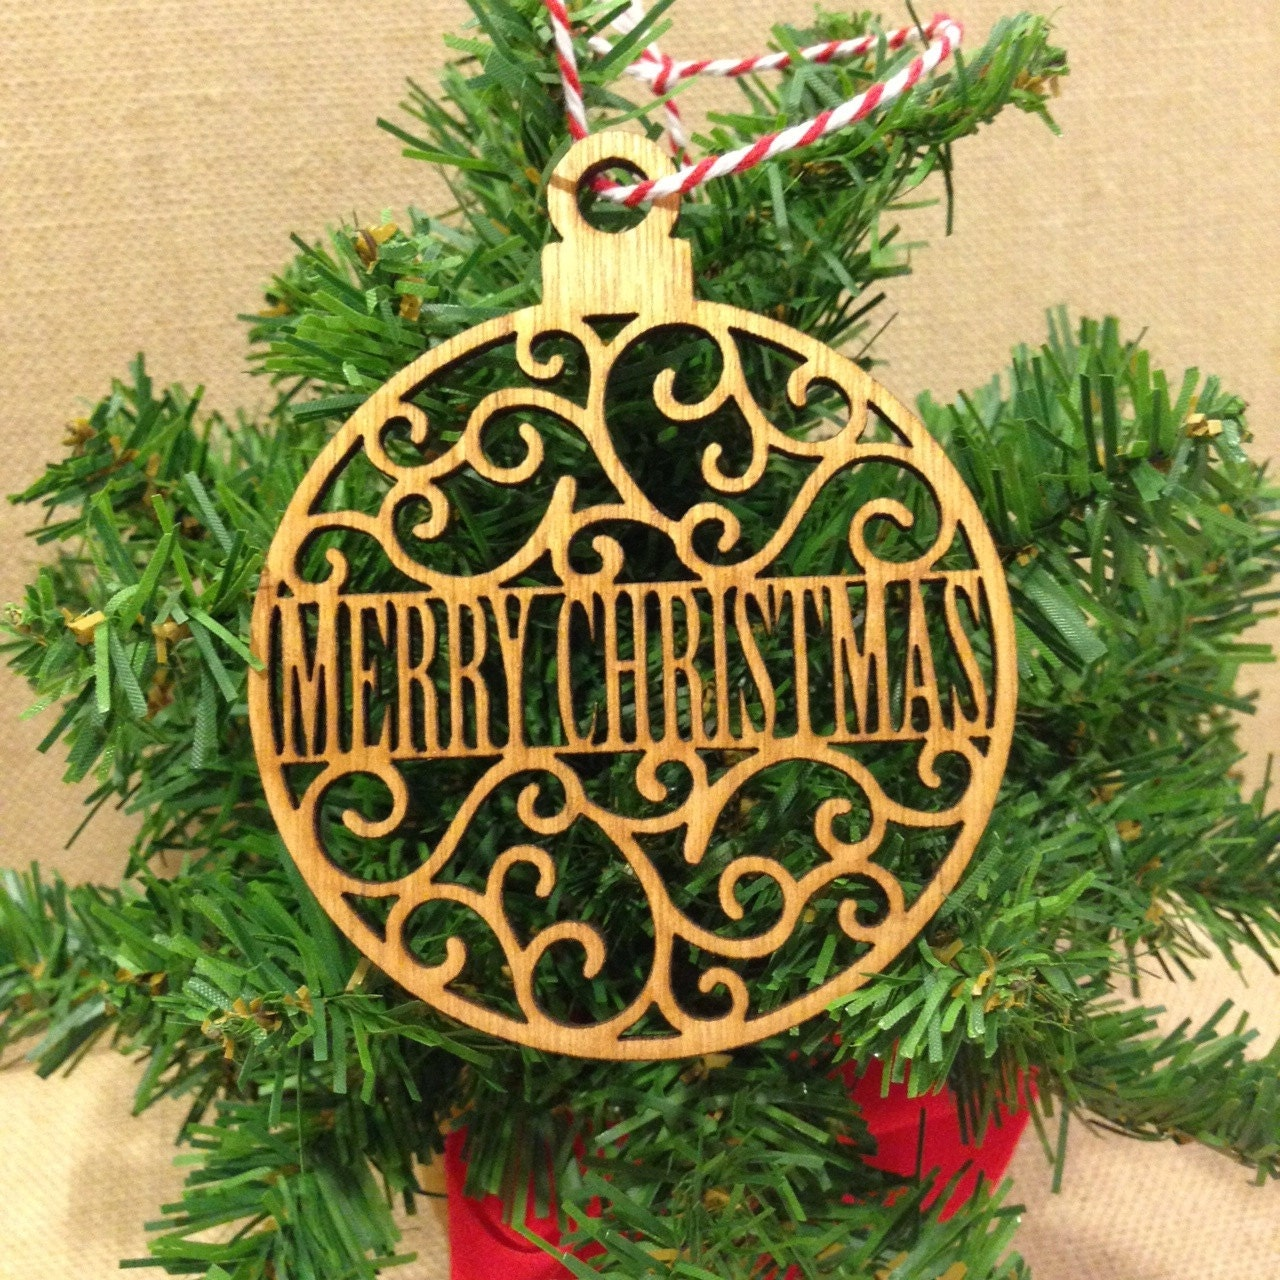 Merry Christmas Ornaments: Merry Christmas Wood Ornament Laser Cut Flourished Design